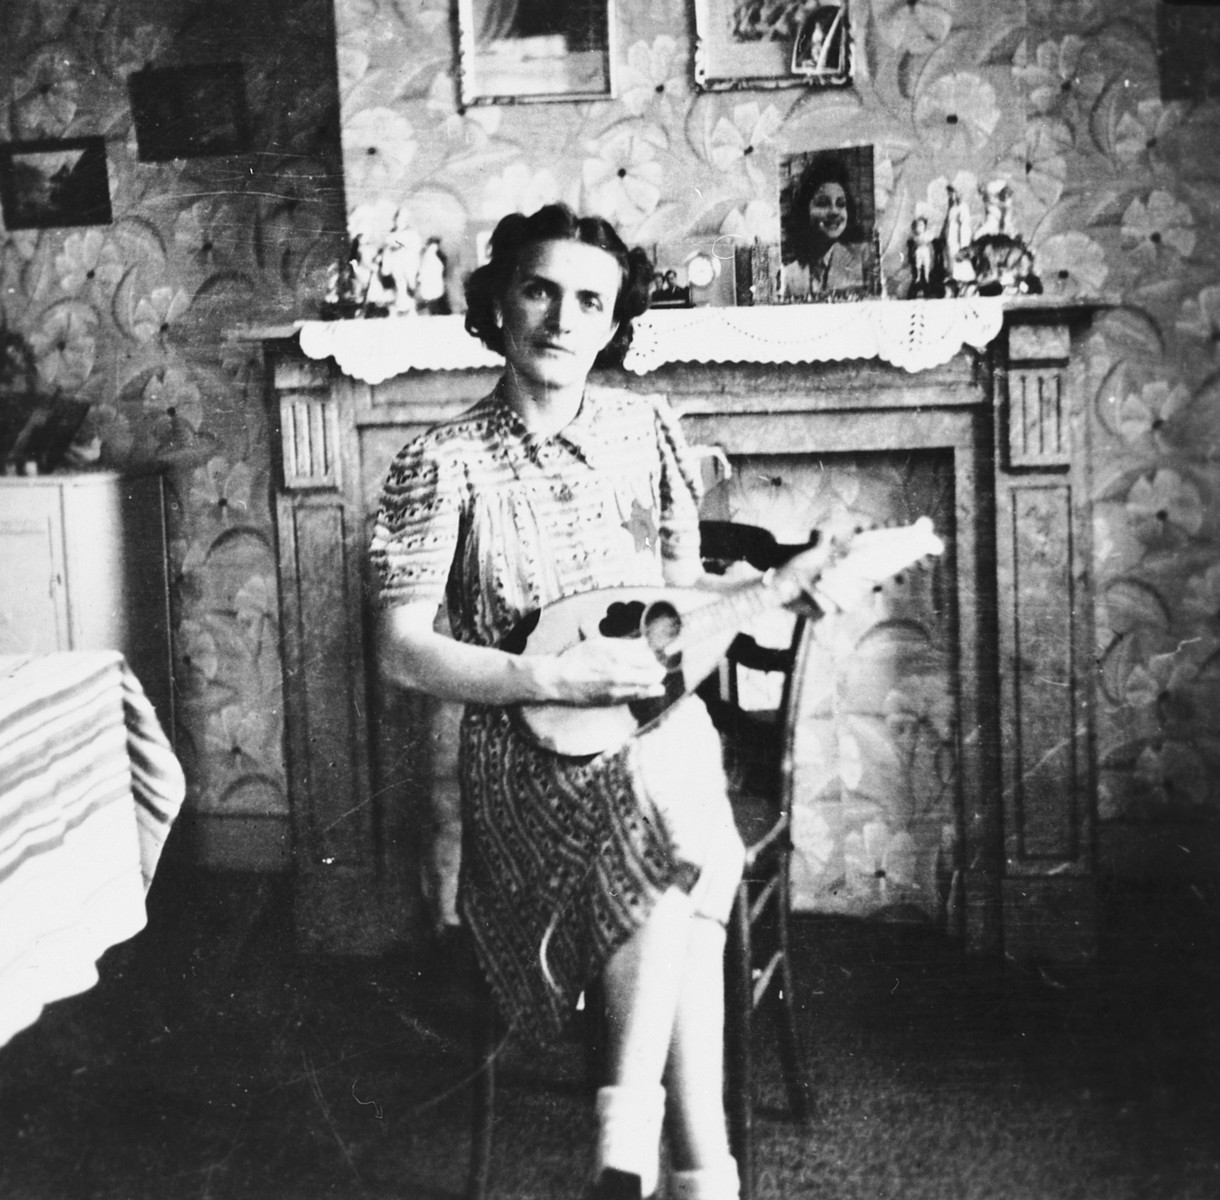 A Jewish woman living in hiding as a Christian, plays the mandolin in her apartment in Brussels.  Pictured is Leah Ciechanow.  She was subsequently deported to her death in Auschwitz.